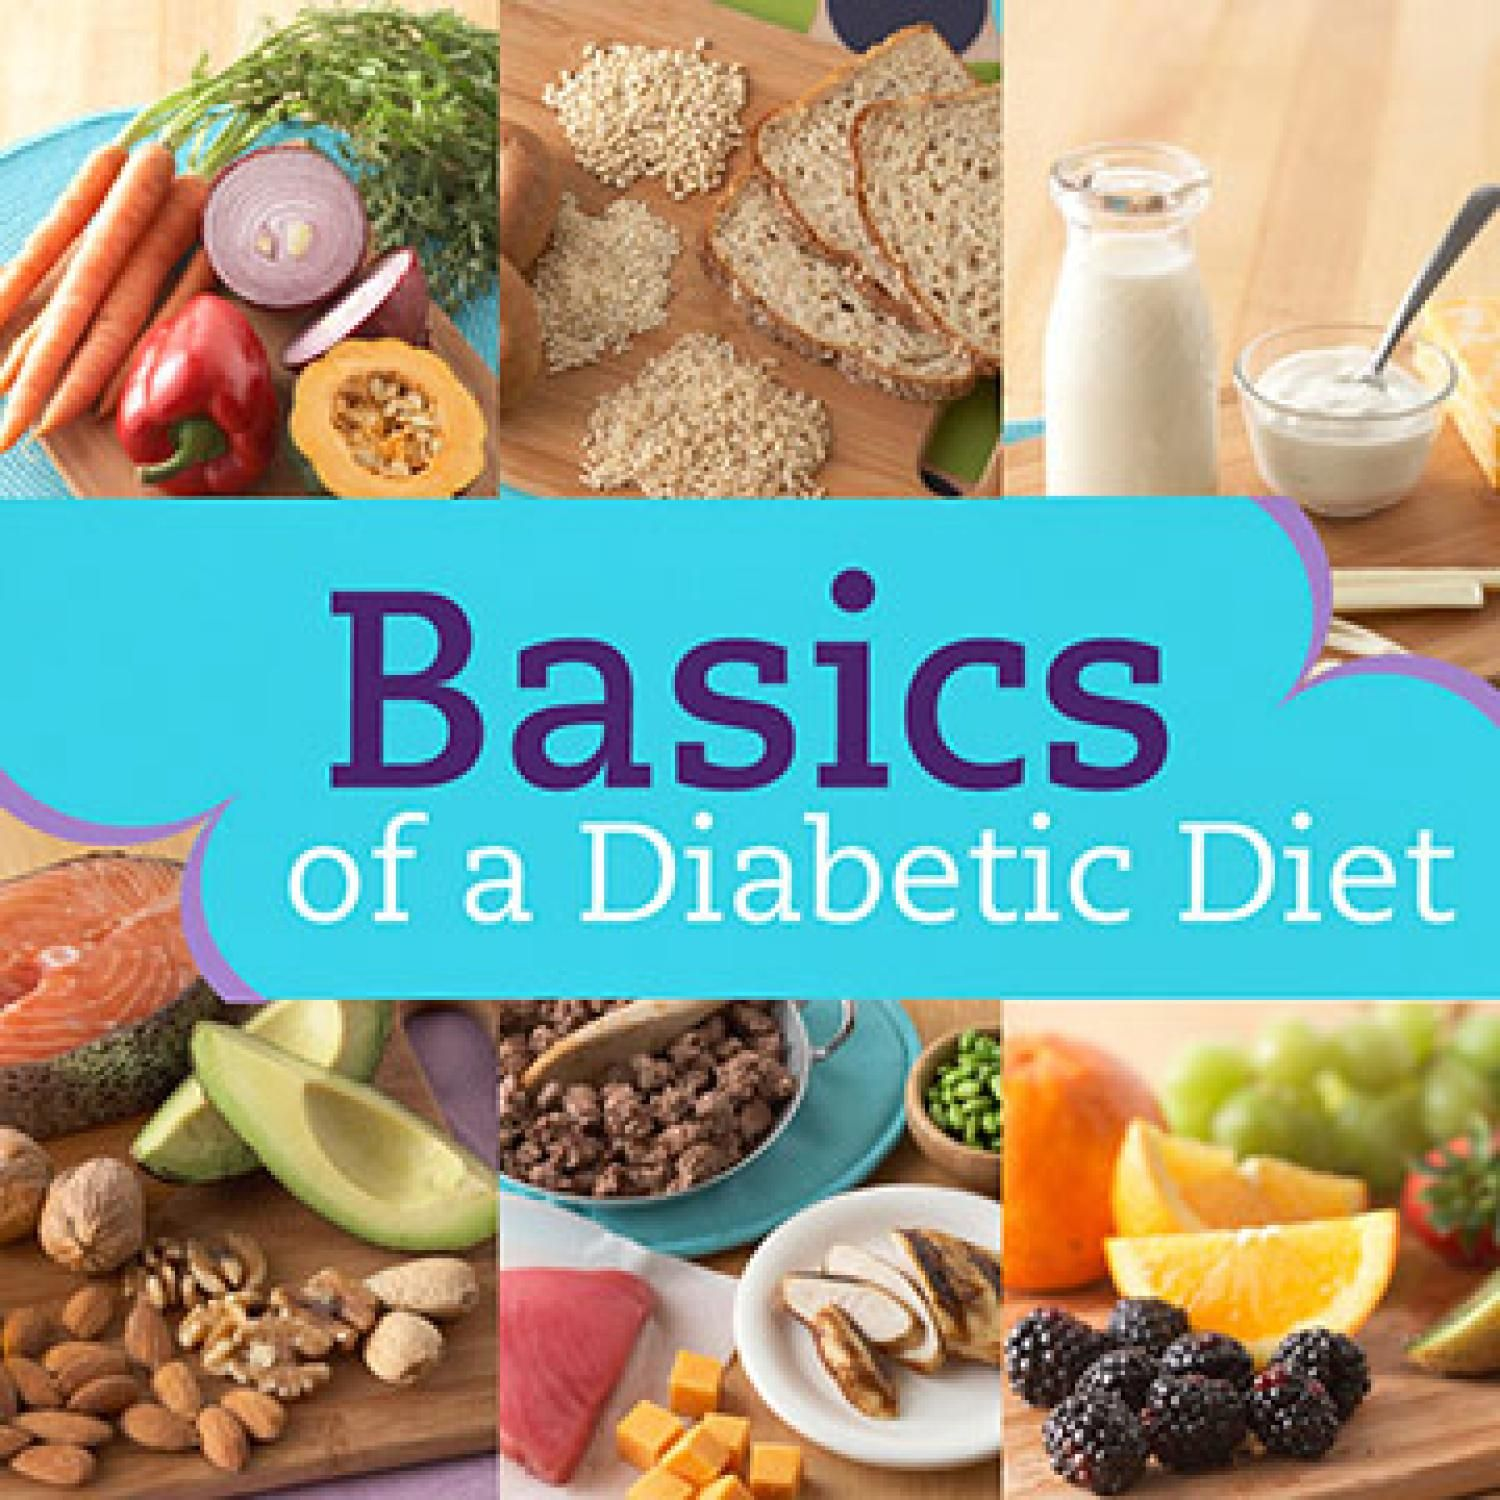 newly diagnosed diabetic diet what can i eat